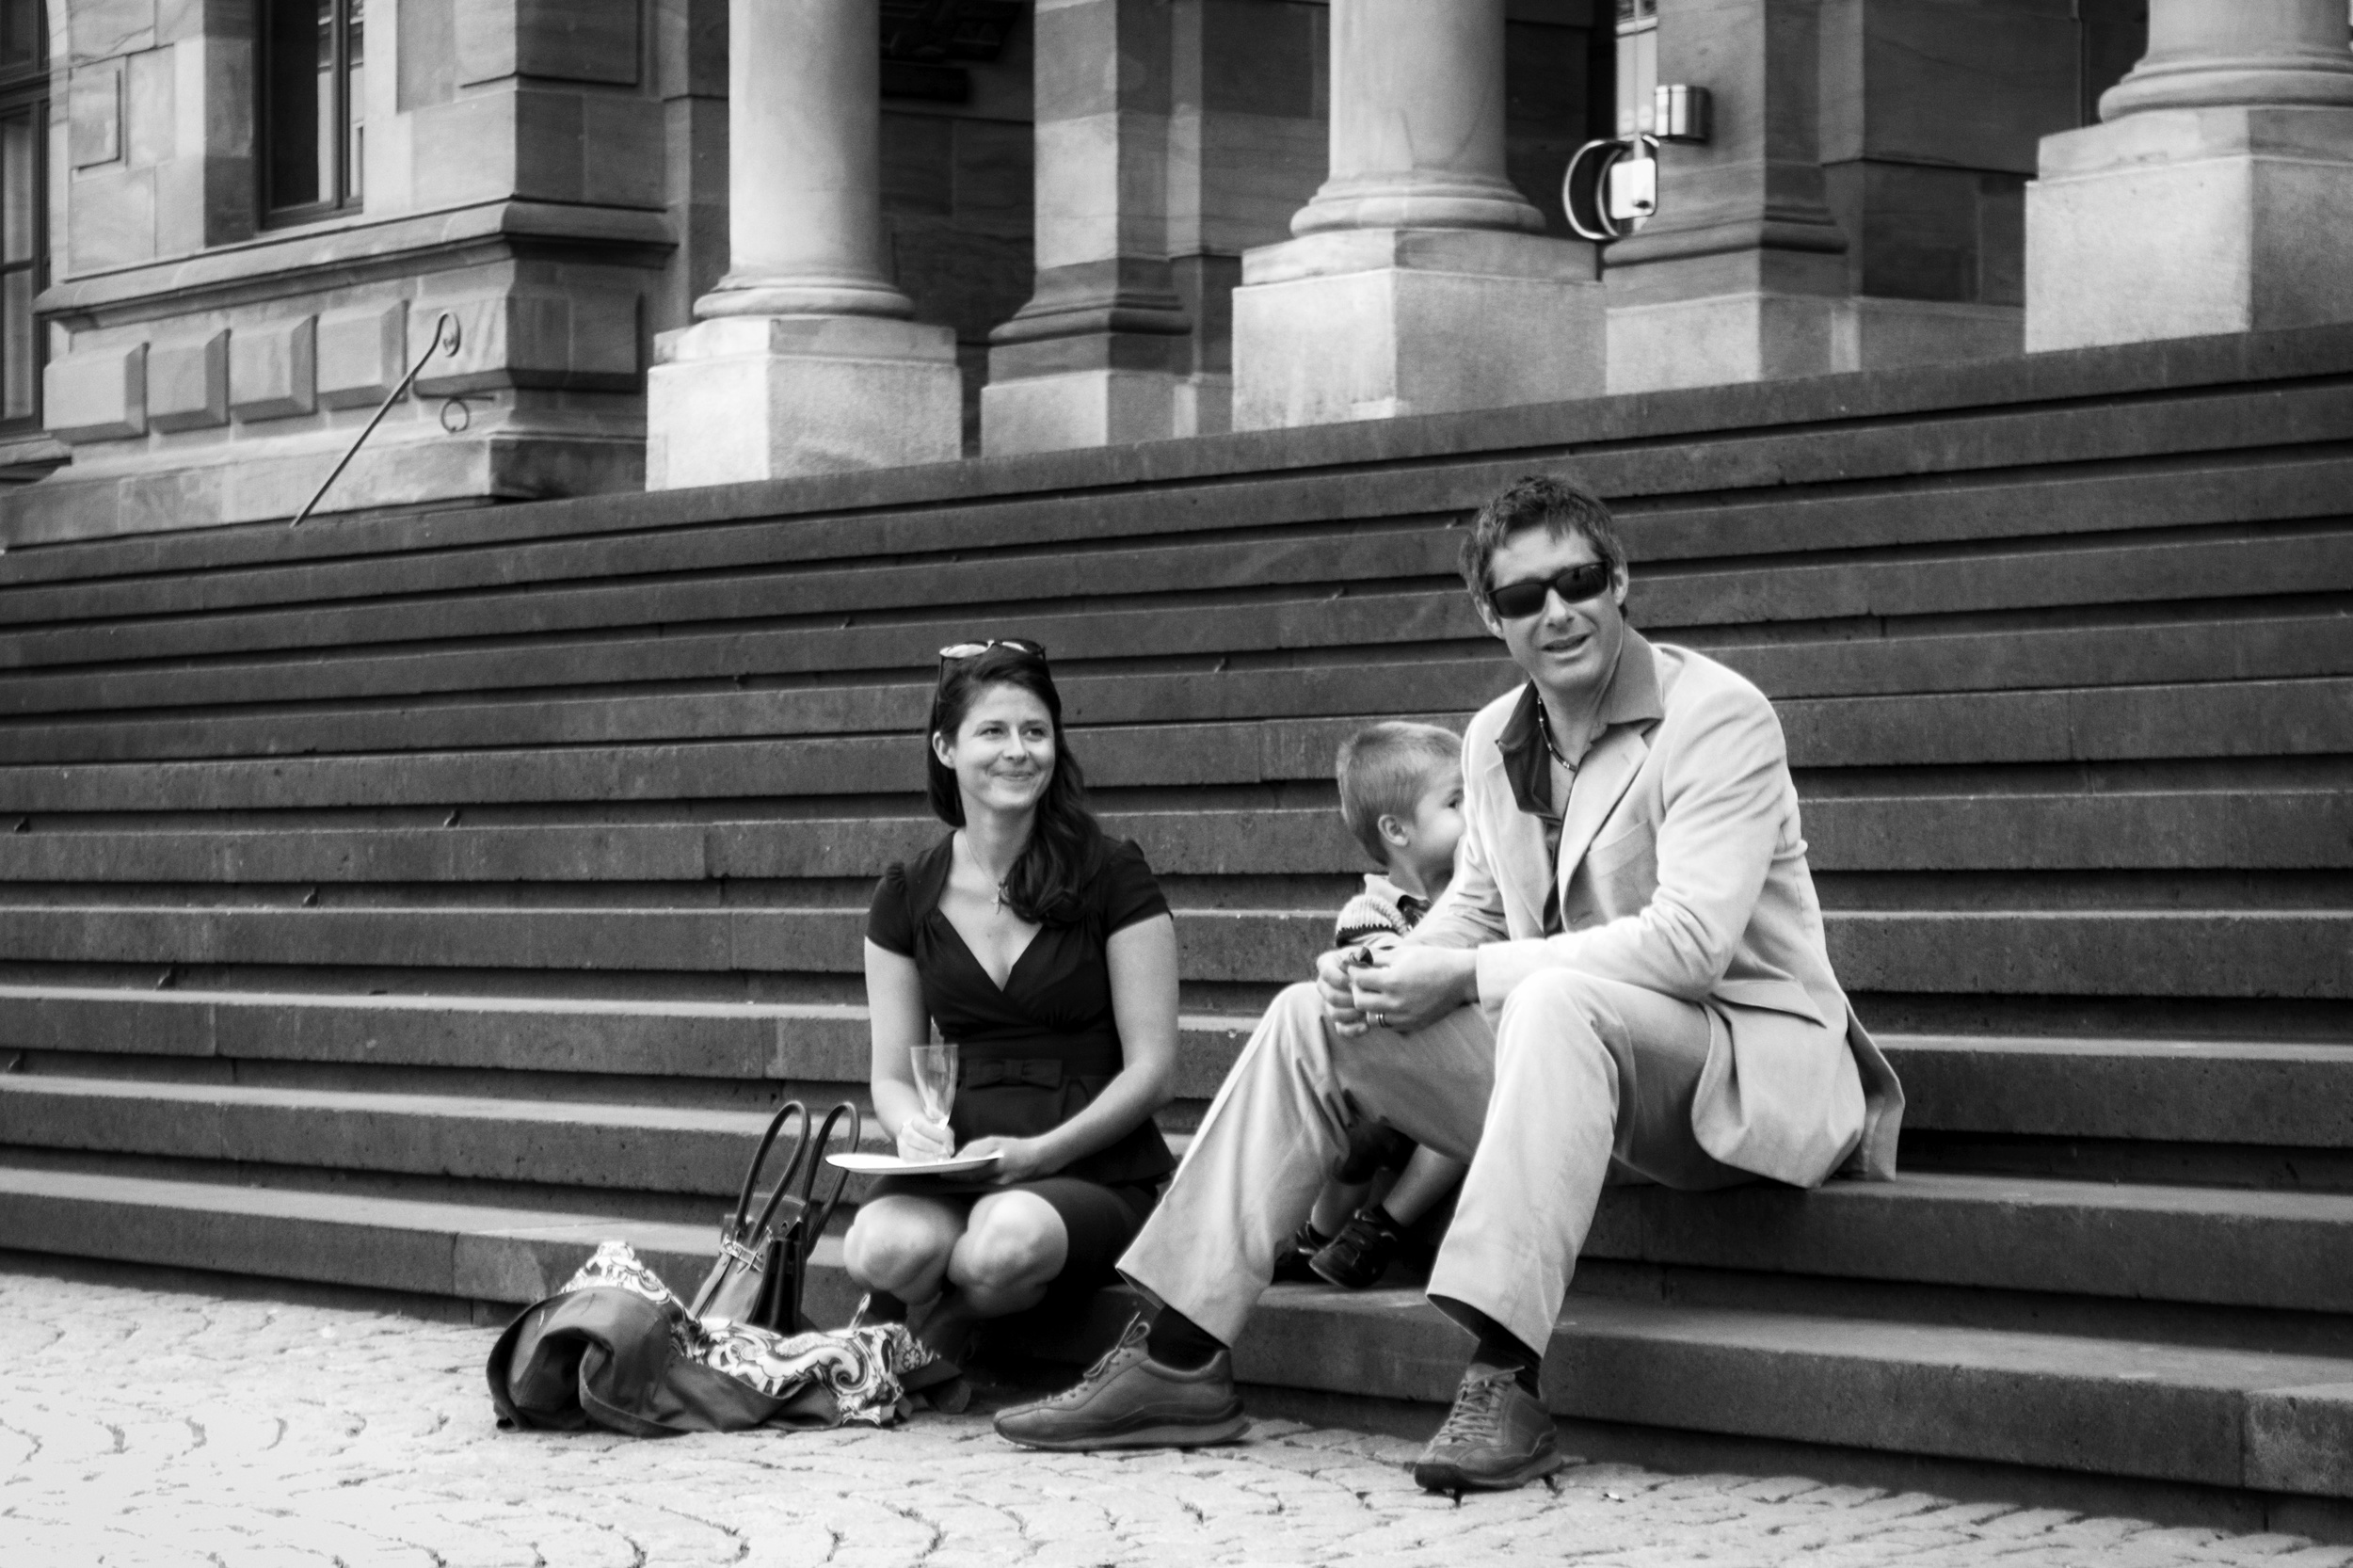 My wife's cousin and his family taking a break during the wedding.